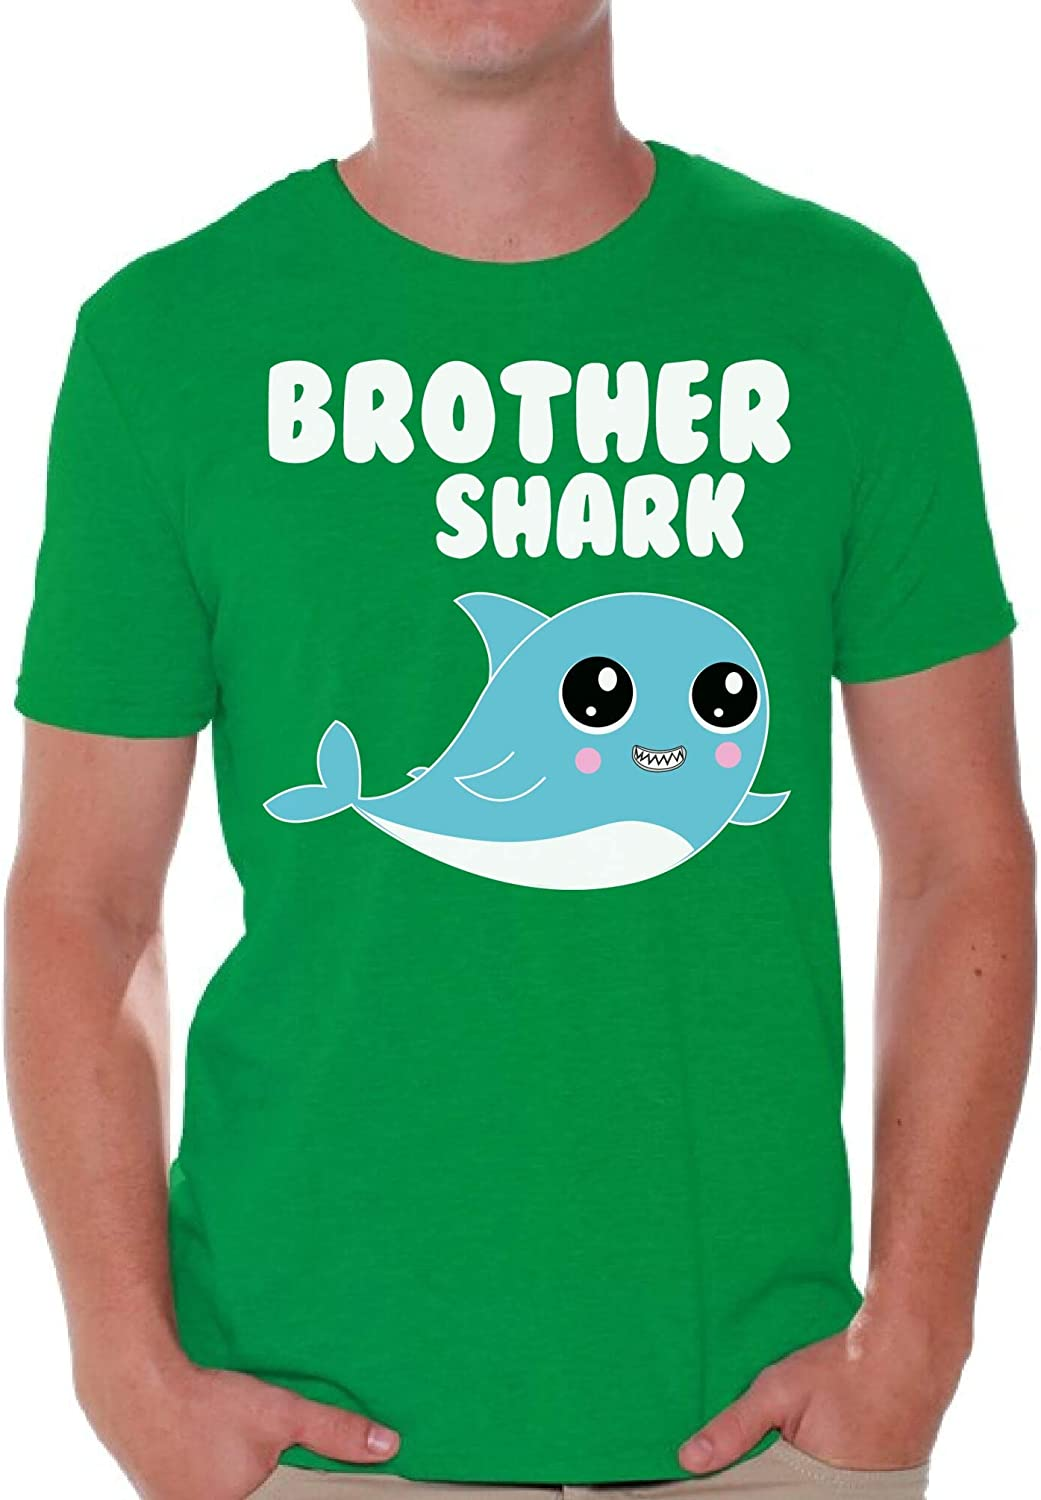 Awkward Styles Brother Shark T-Shirt for Men Funny Family Vacation Shark Family T Shirts